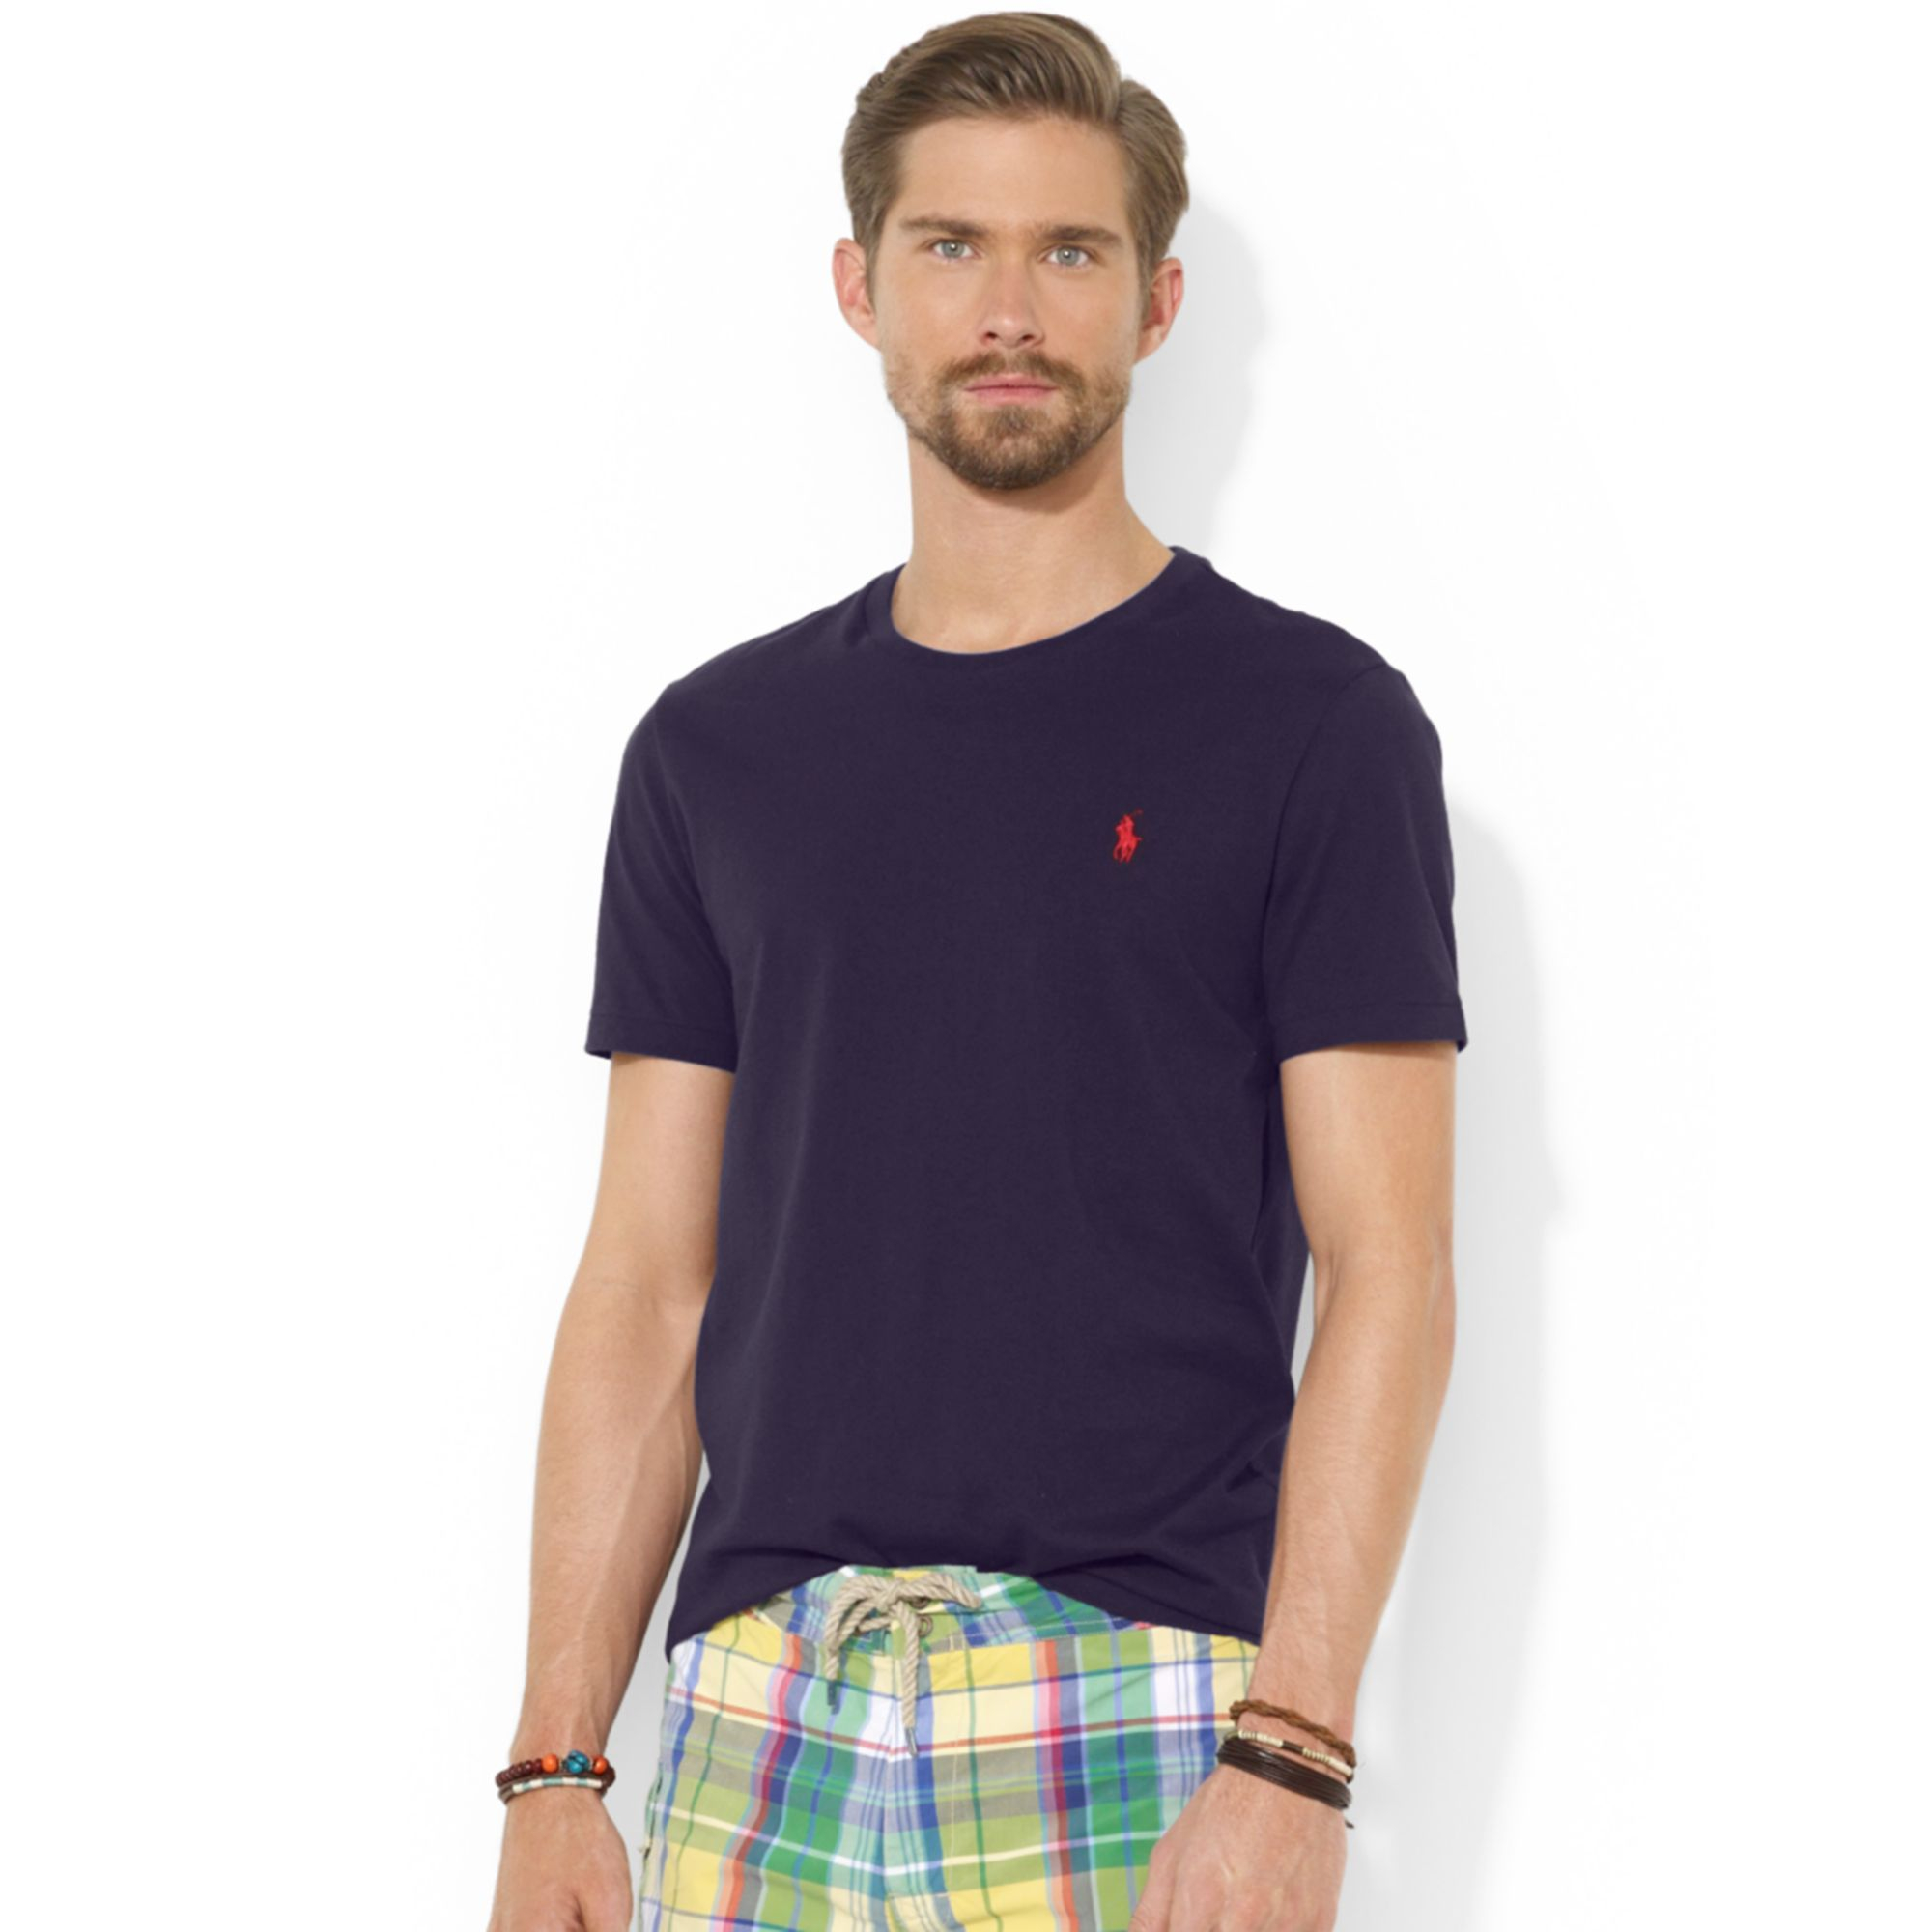 Ralph lauren polo custom fit cotton jersey t shirt in for Custom fit t shirts